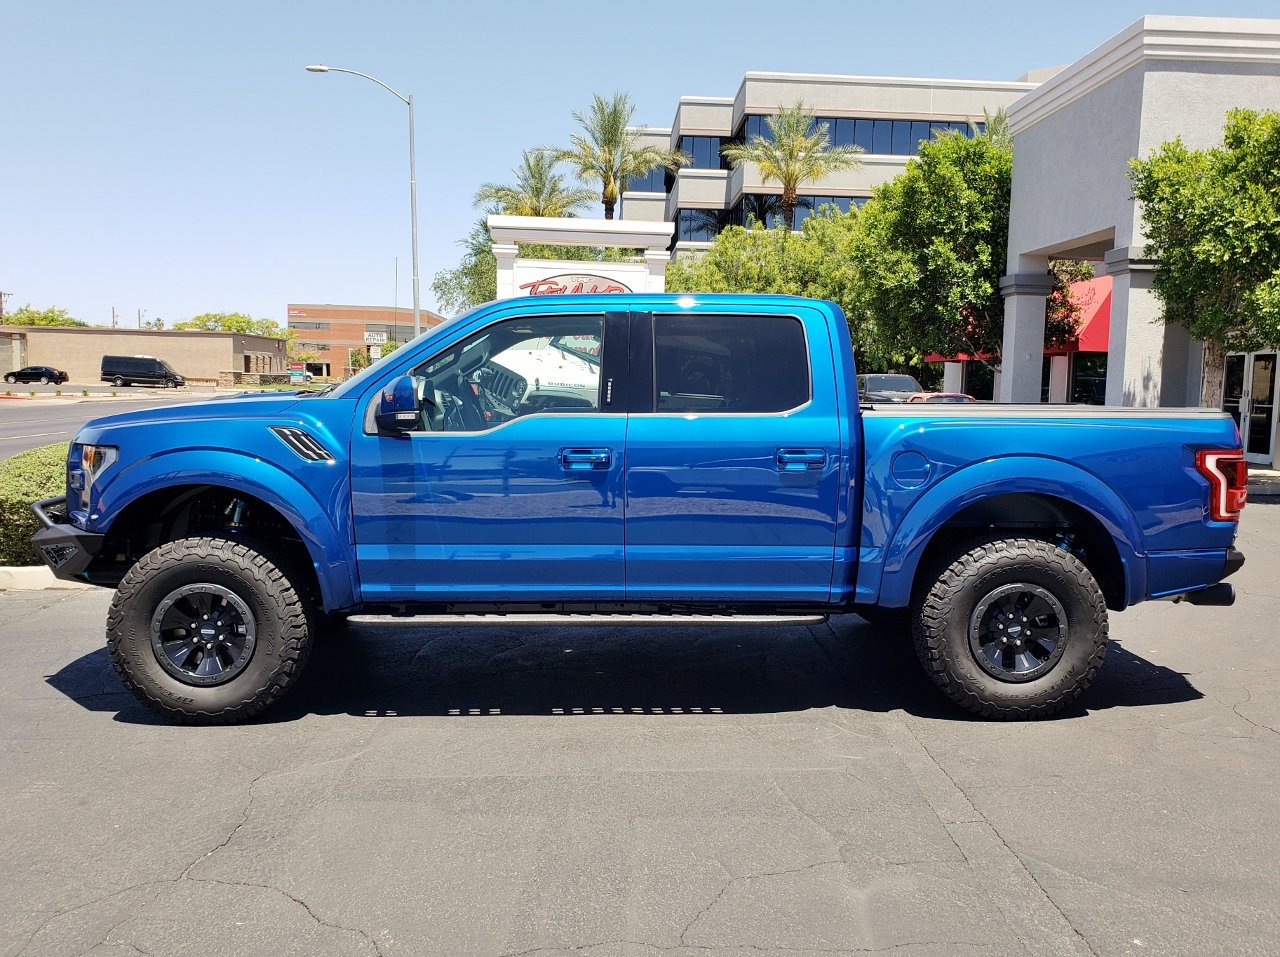 2018 Ford Raptor Blue